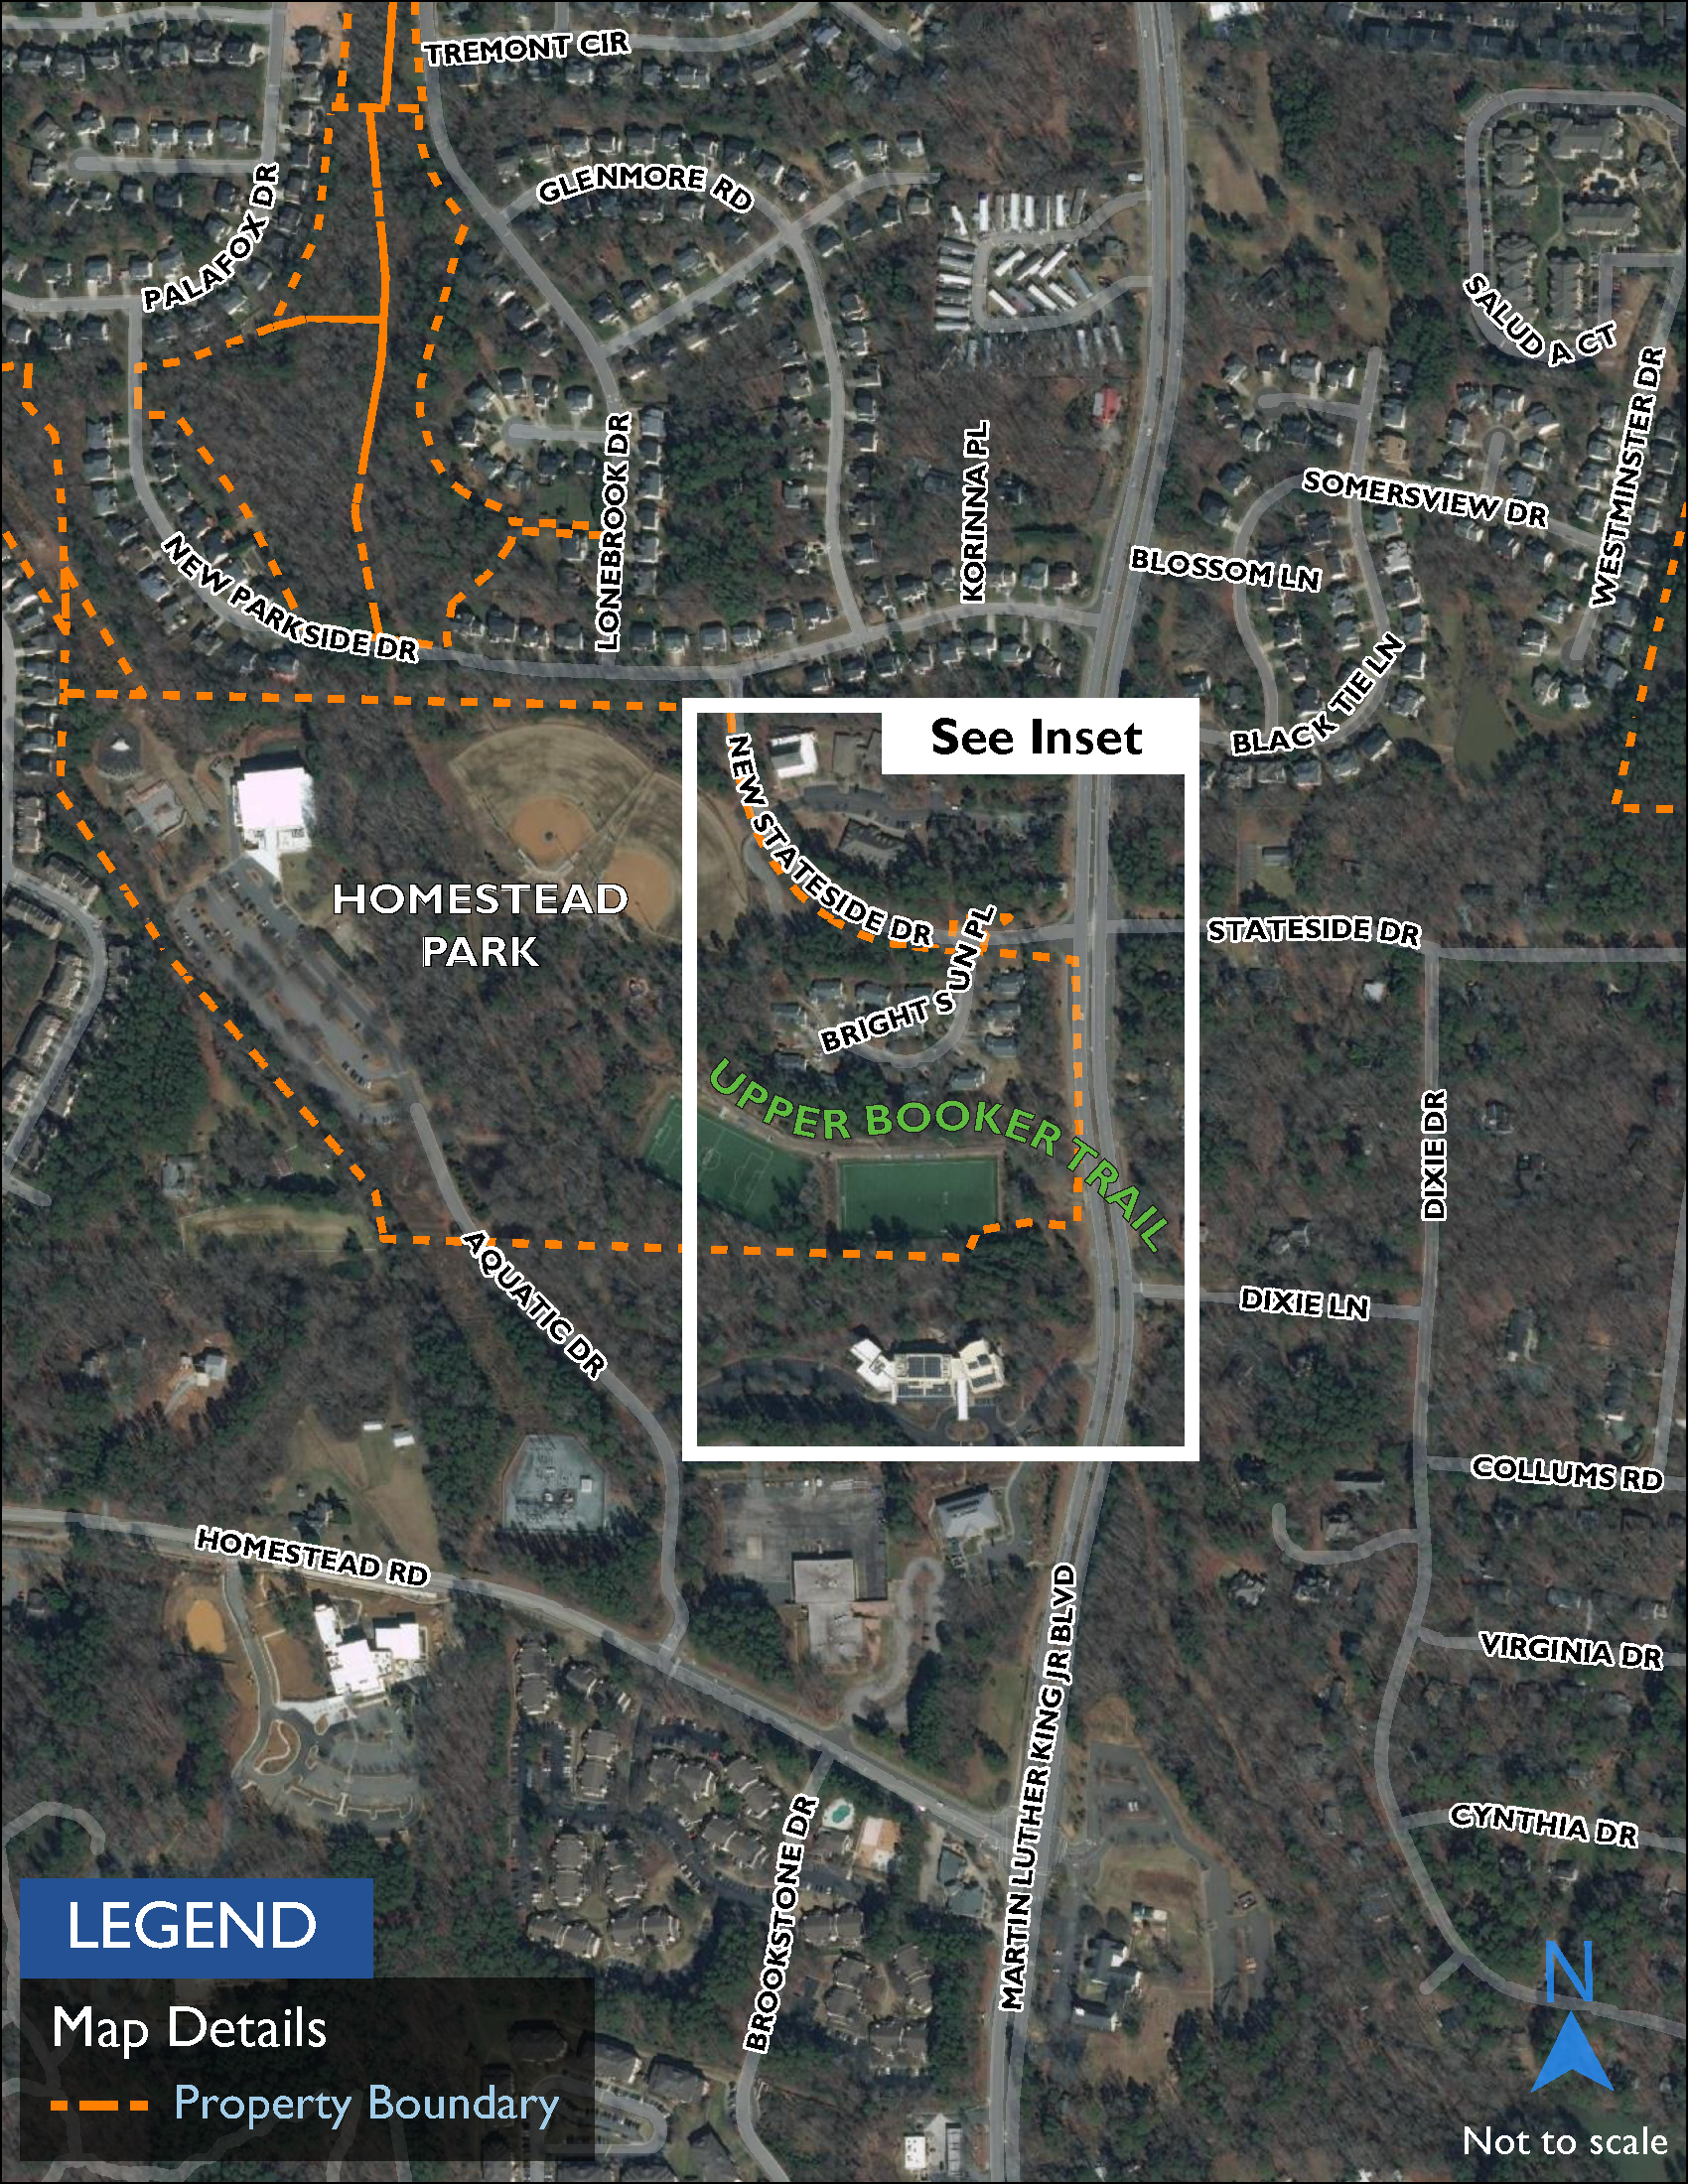 Map showing Homestead Park which is a green space with athletic, play, and picnic facilities. Upper Booker Trail extends from Homestead Park's internal trail system north along Booker Creek to Weaver Dairy Road.